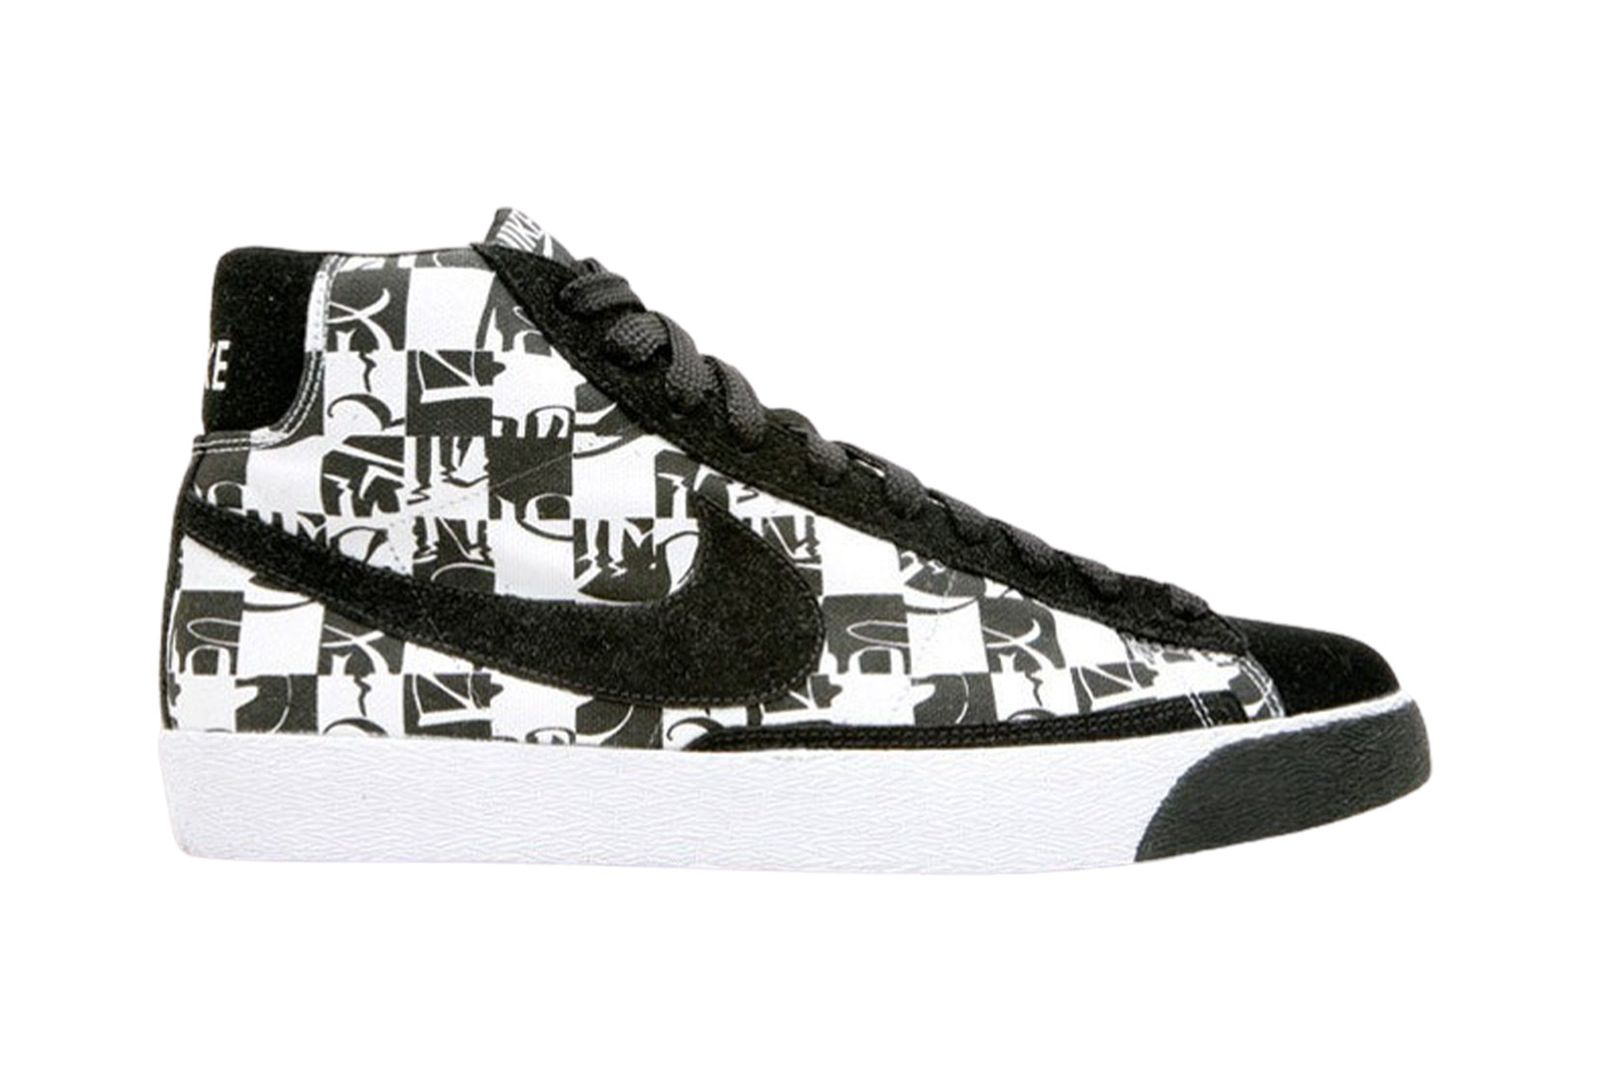 stussy-nike-sneaker-collaboration-roundup-10